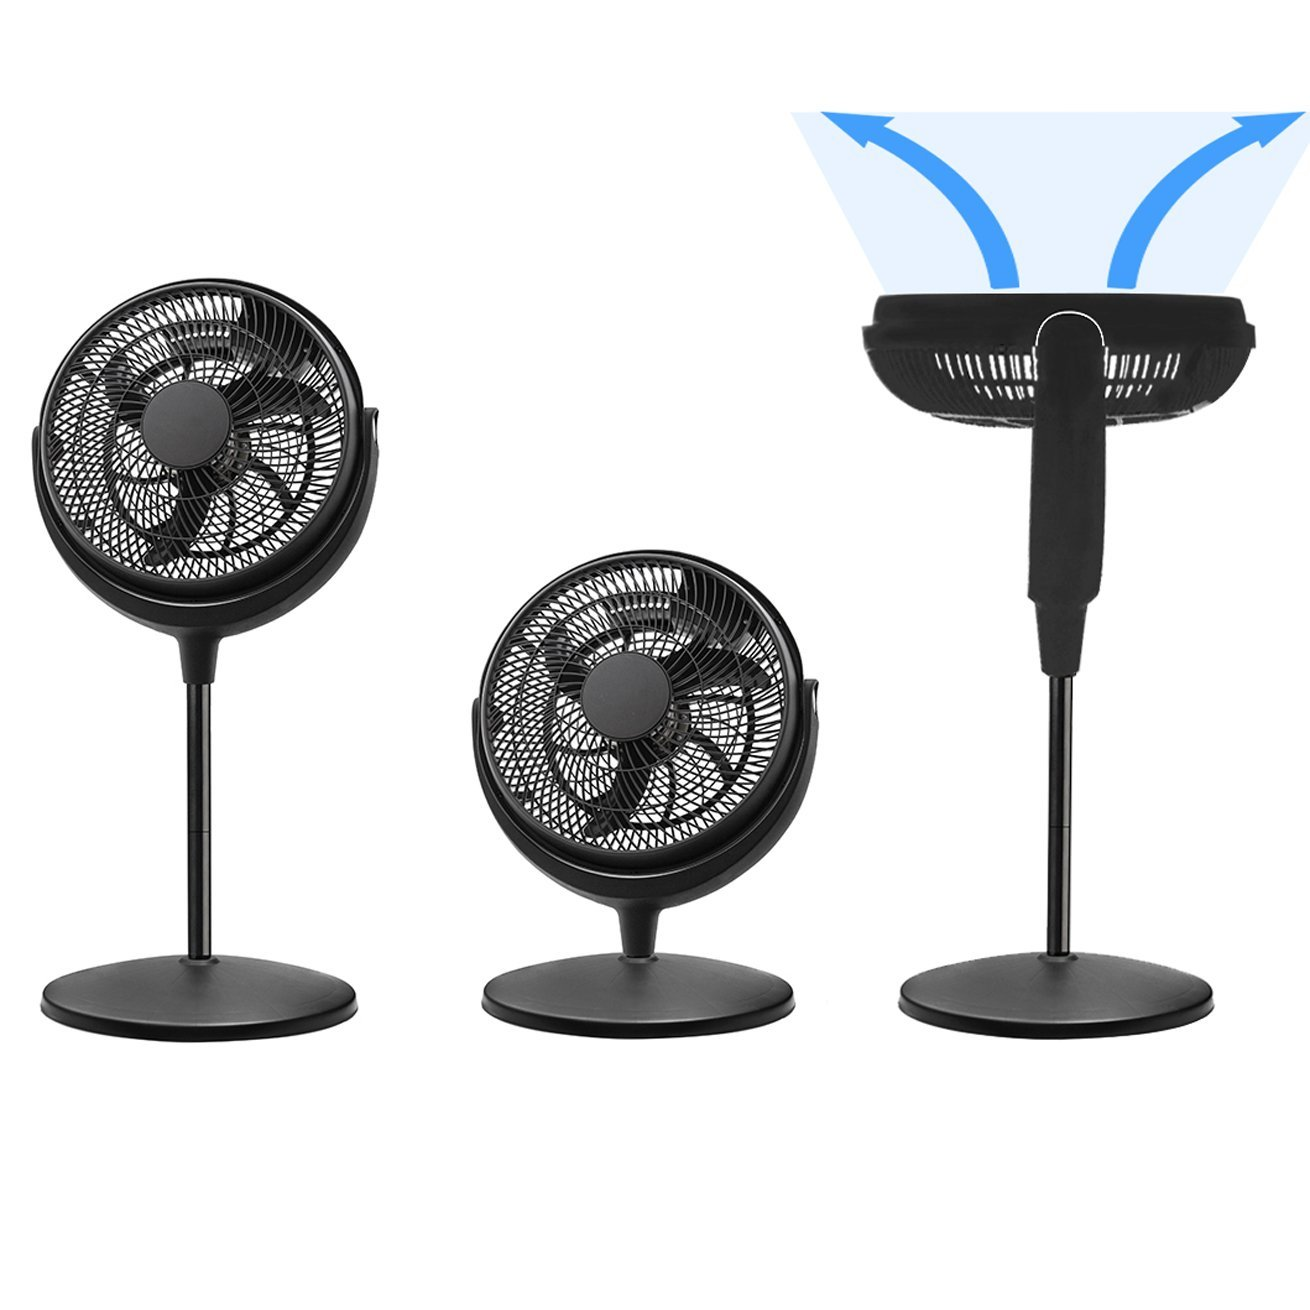 High Velocity Air Circulator and Fan 12 inch Adjustable Head 3 Speeds Air Flow - Smart & Energy Efficient